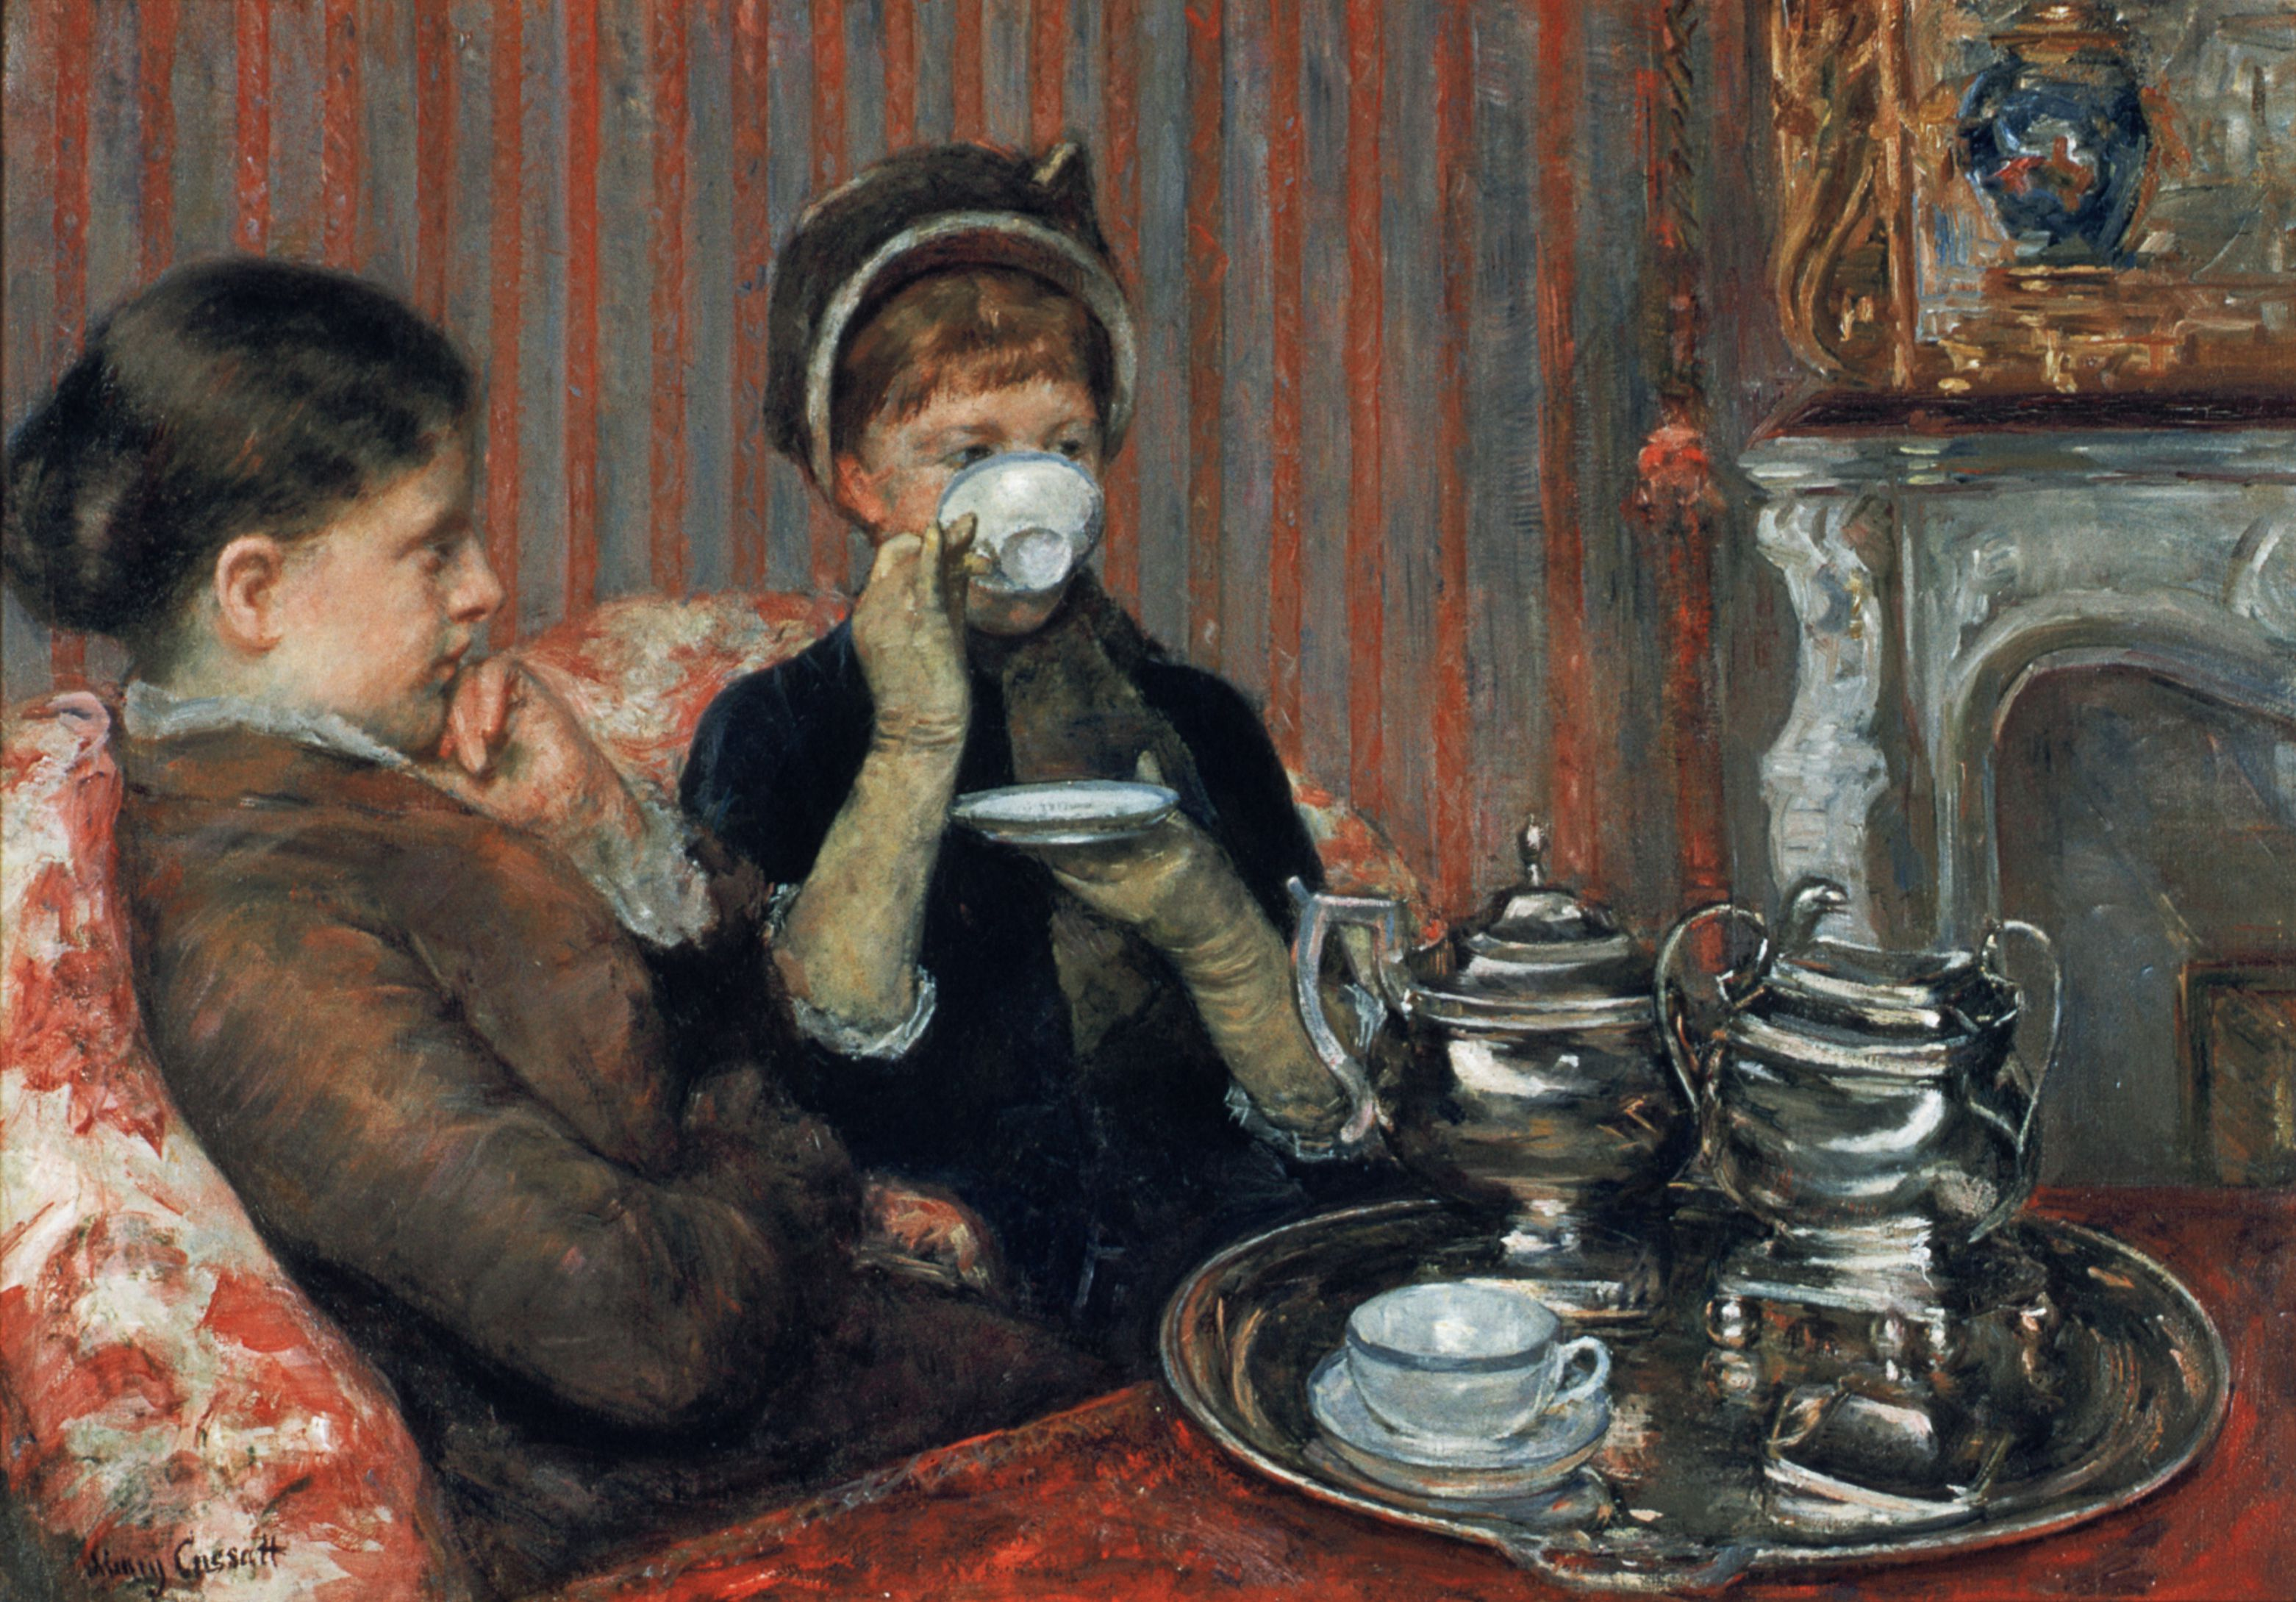 Mary Cassatt Biography Painting History